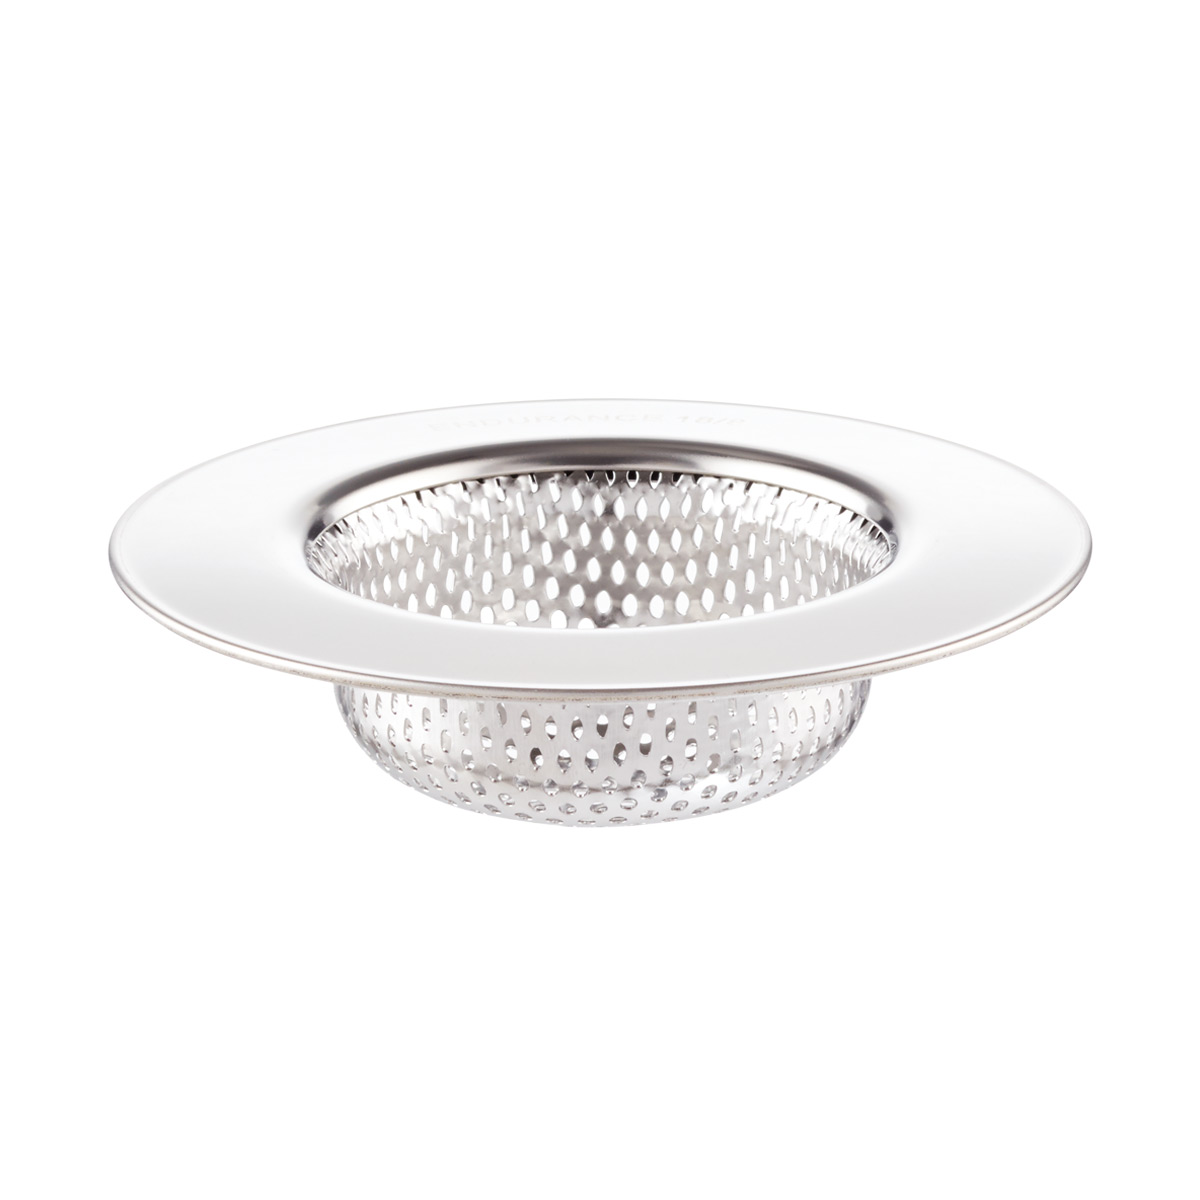 Wasbak Zeef Stainless Steel Sink Strainer The Container Store